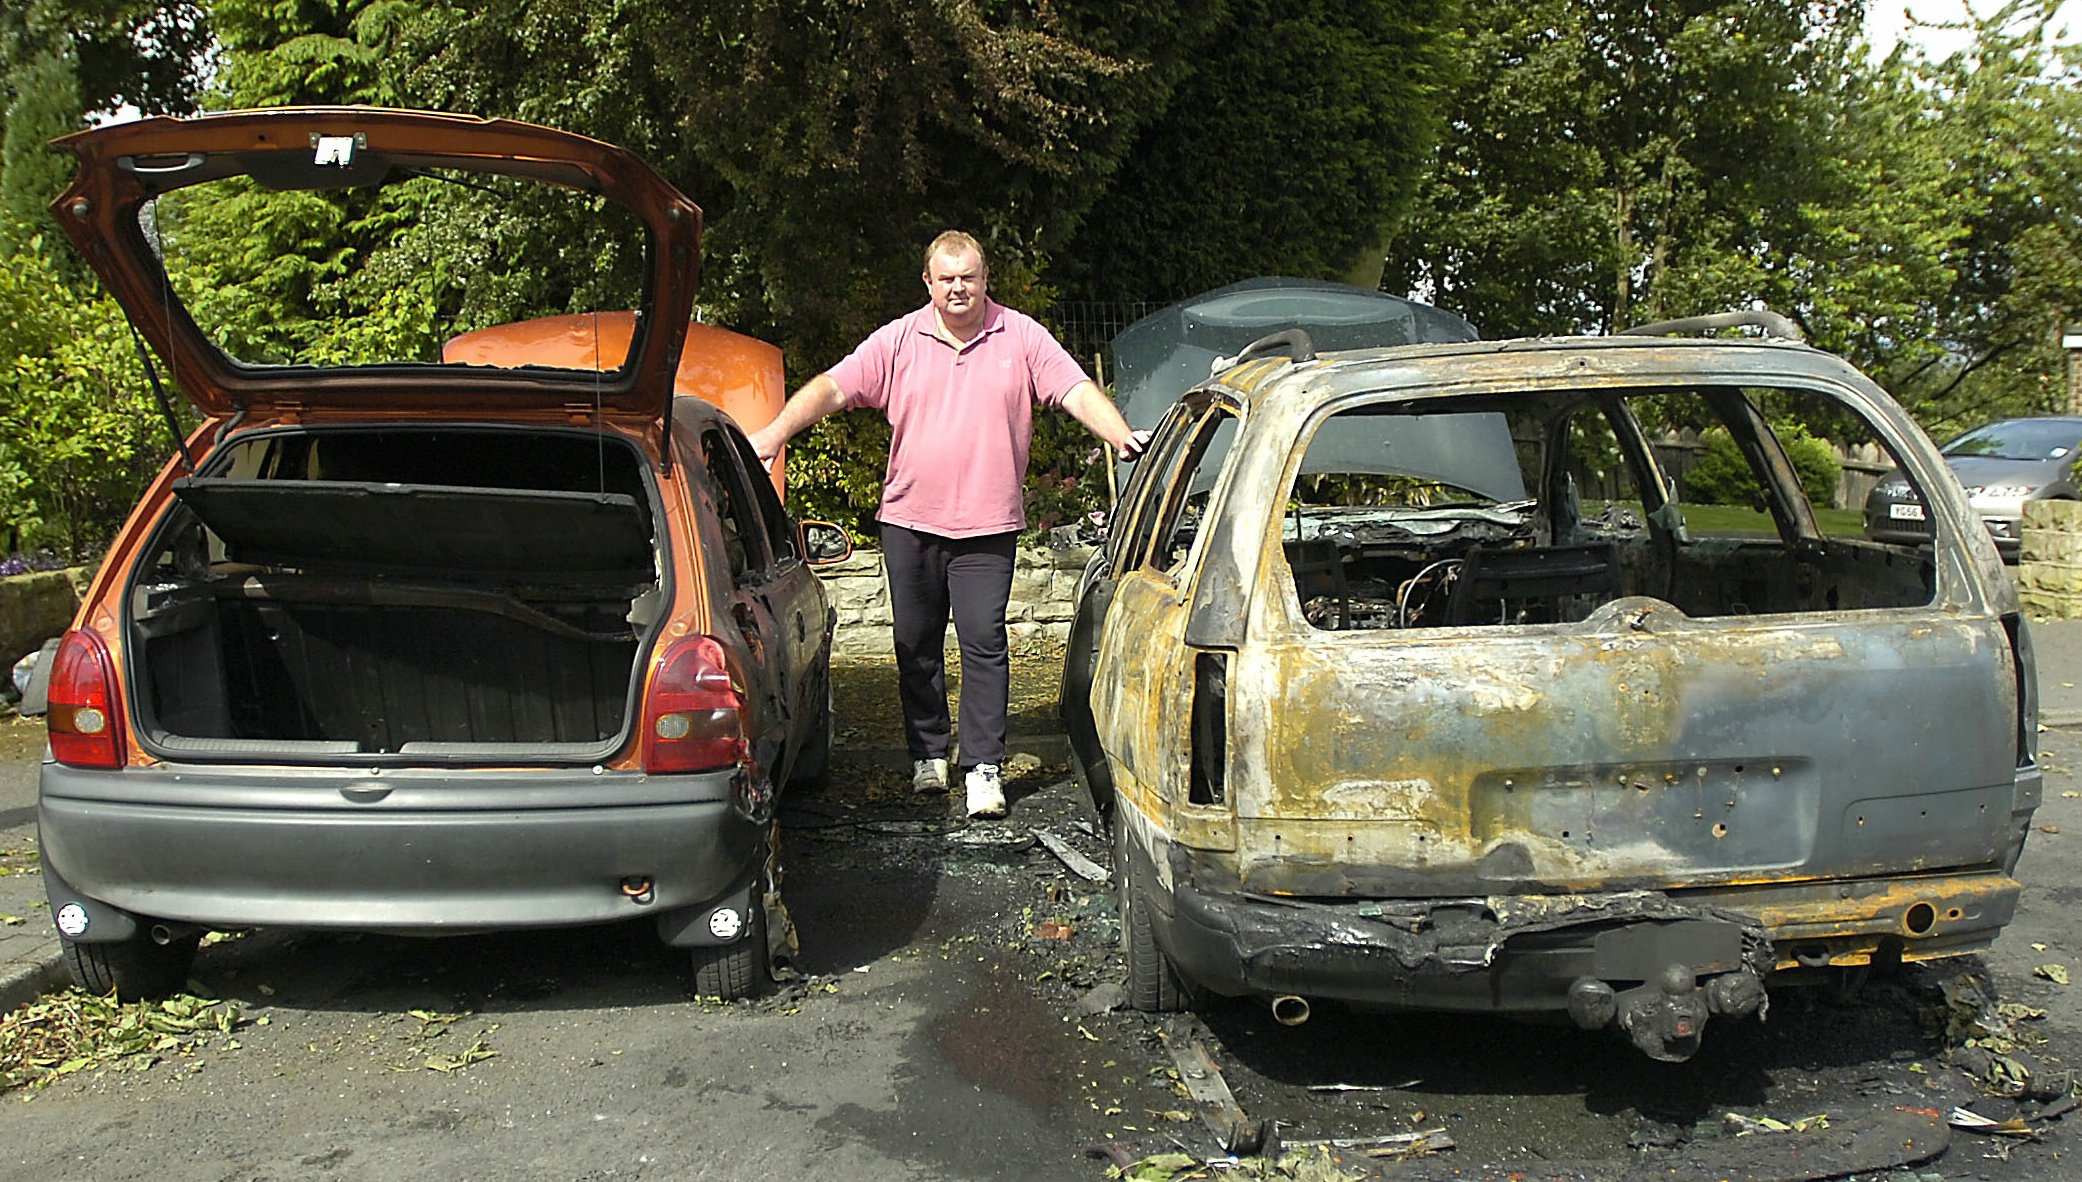 Steve Tiffany with his burned-out Vauxhall Corsa, left, and Omega